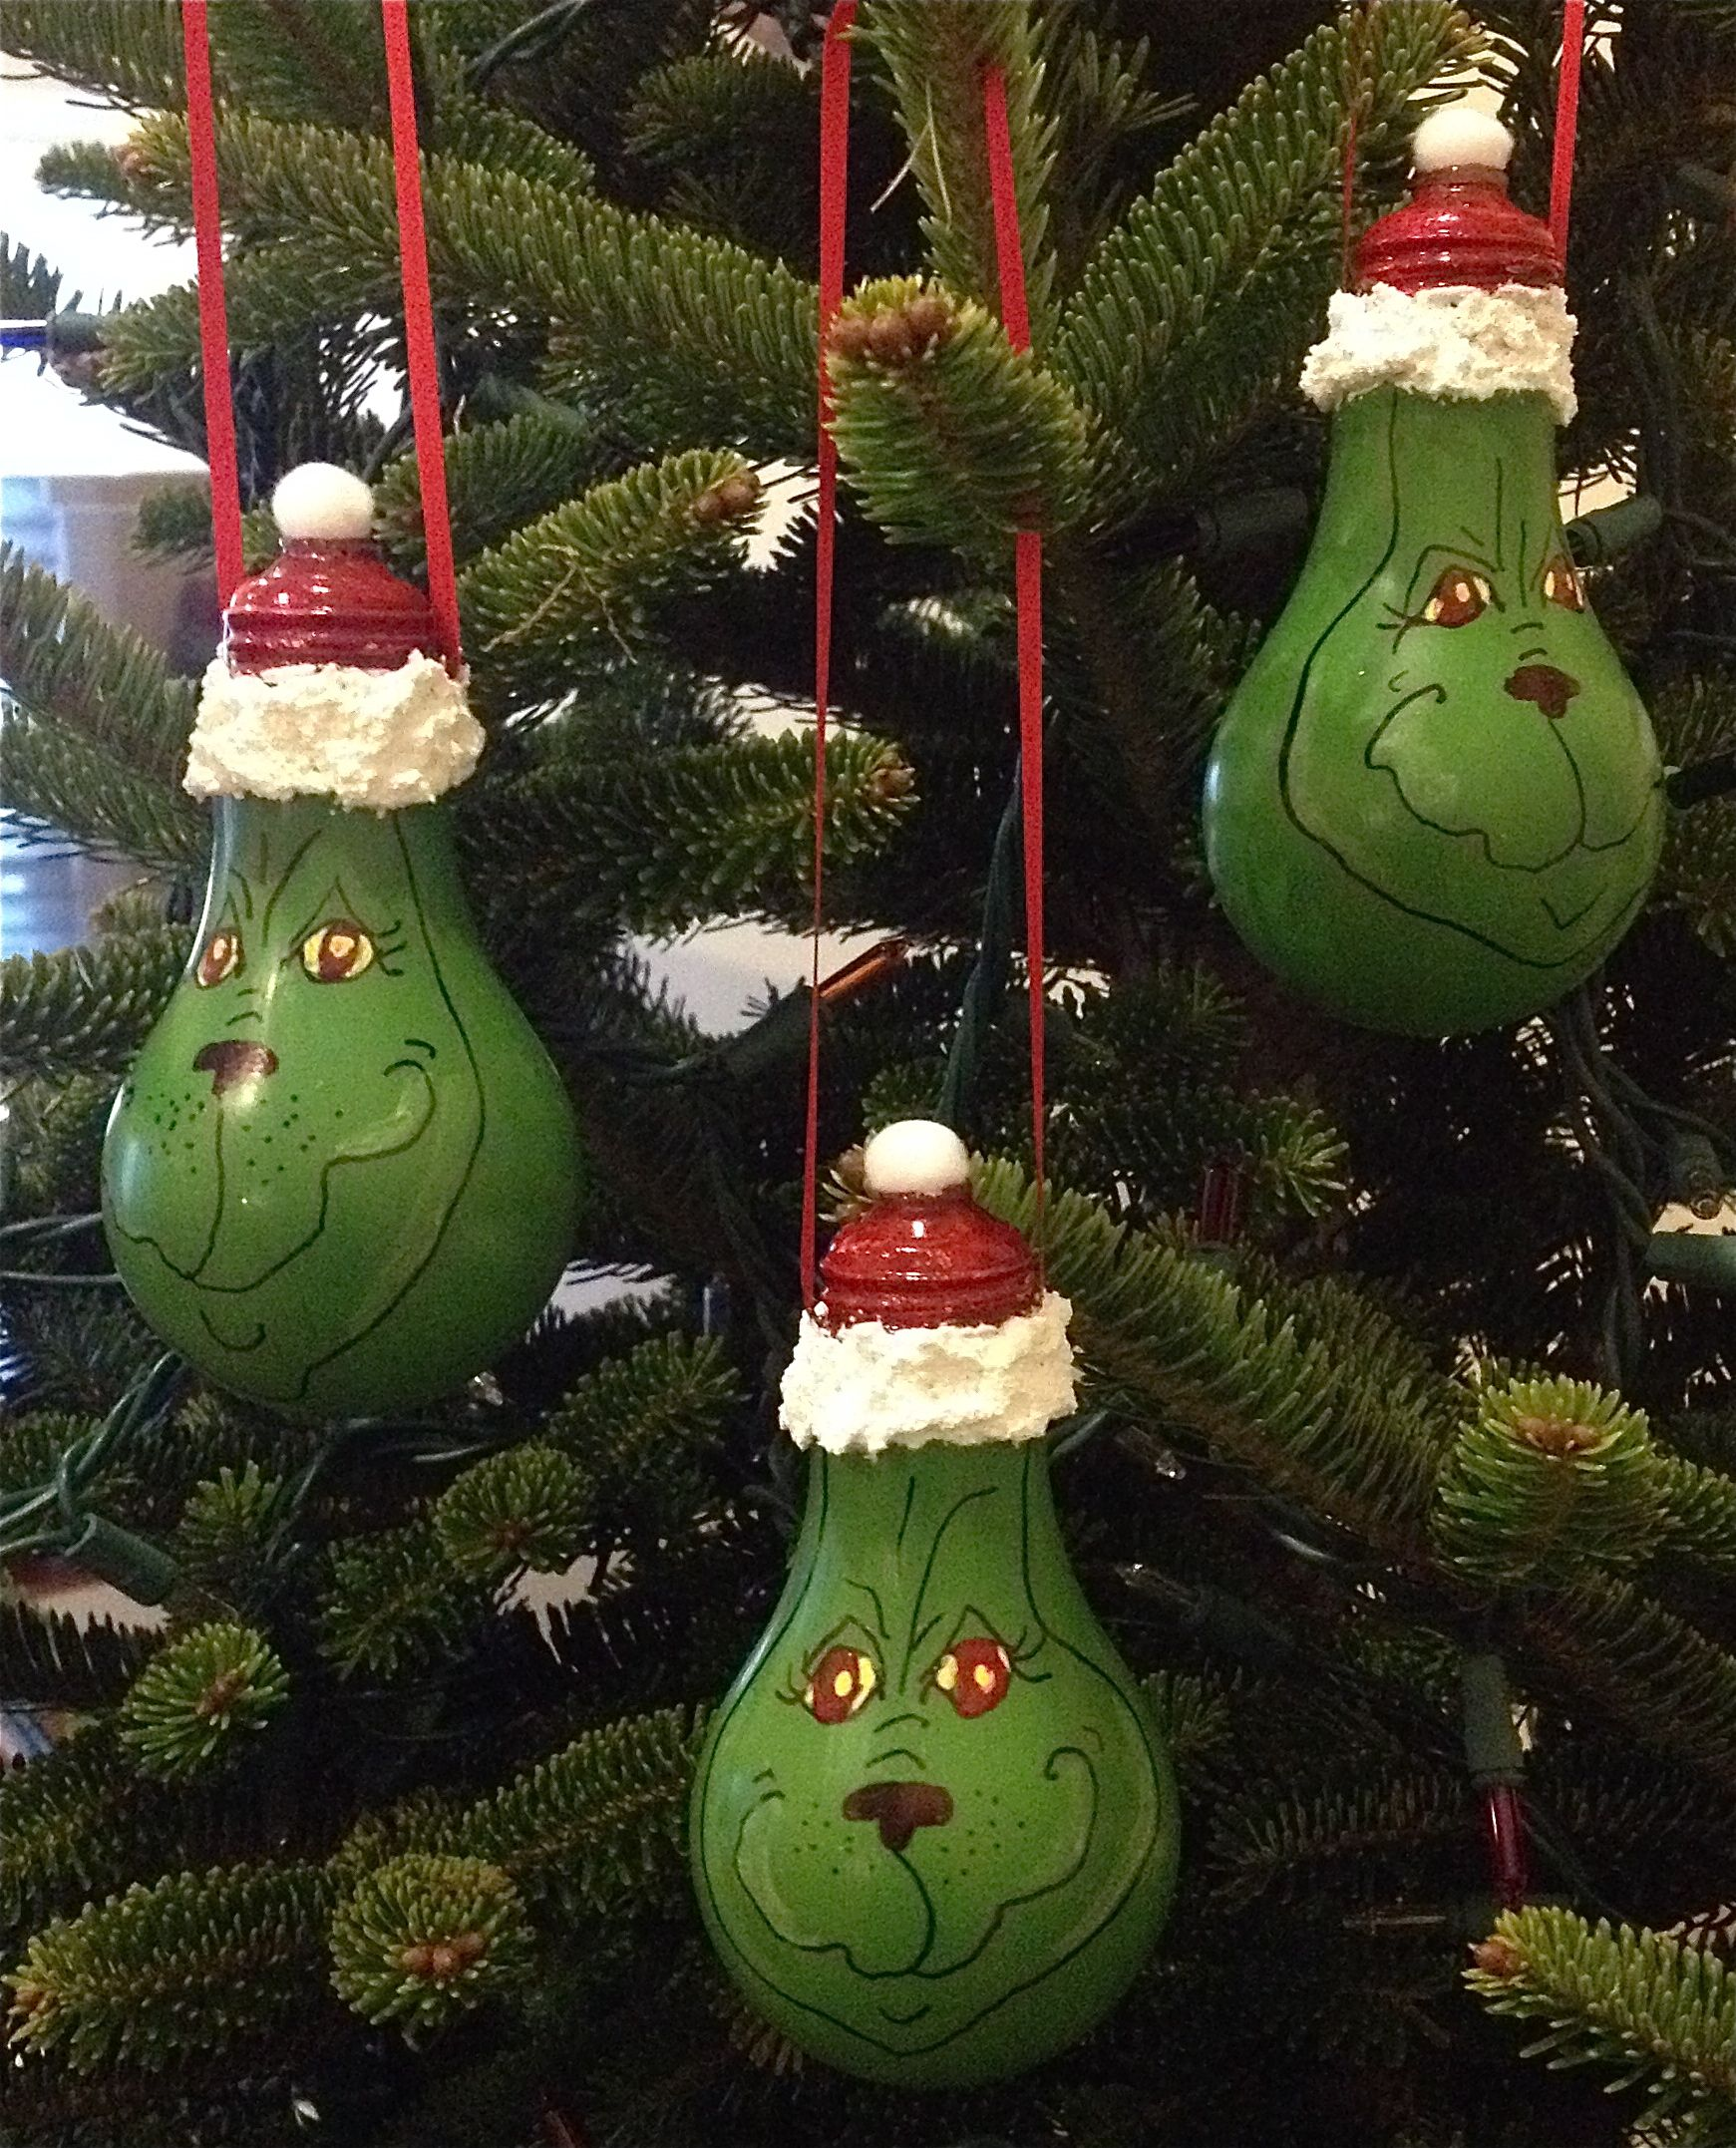 You Re A Mean One Mr Grinch Lightbulb Ornaments Holiday Crafts Christmas Crafts Christmas Ornaments